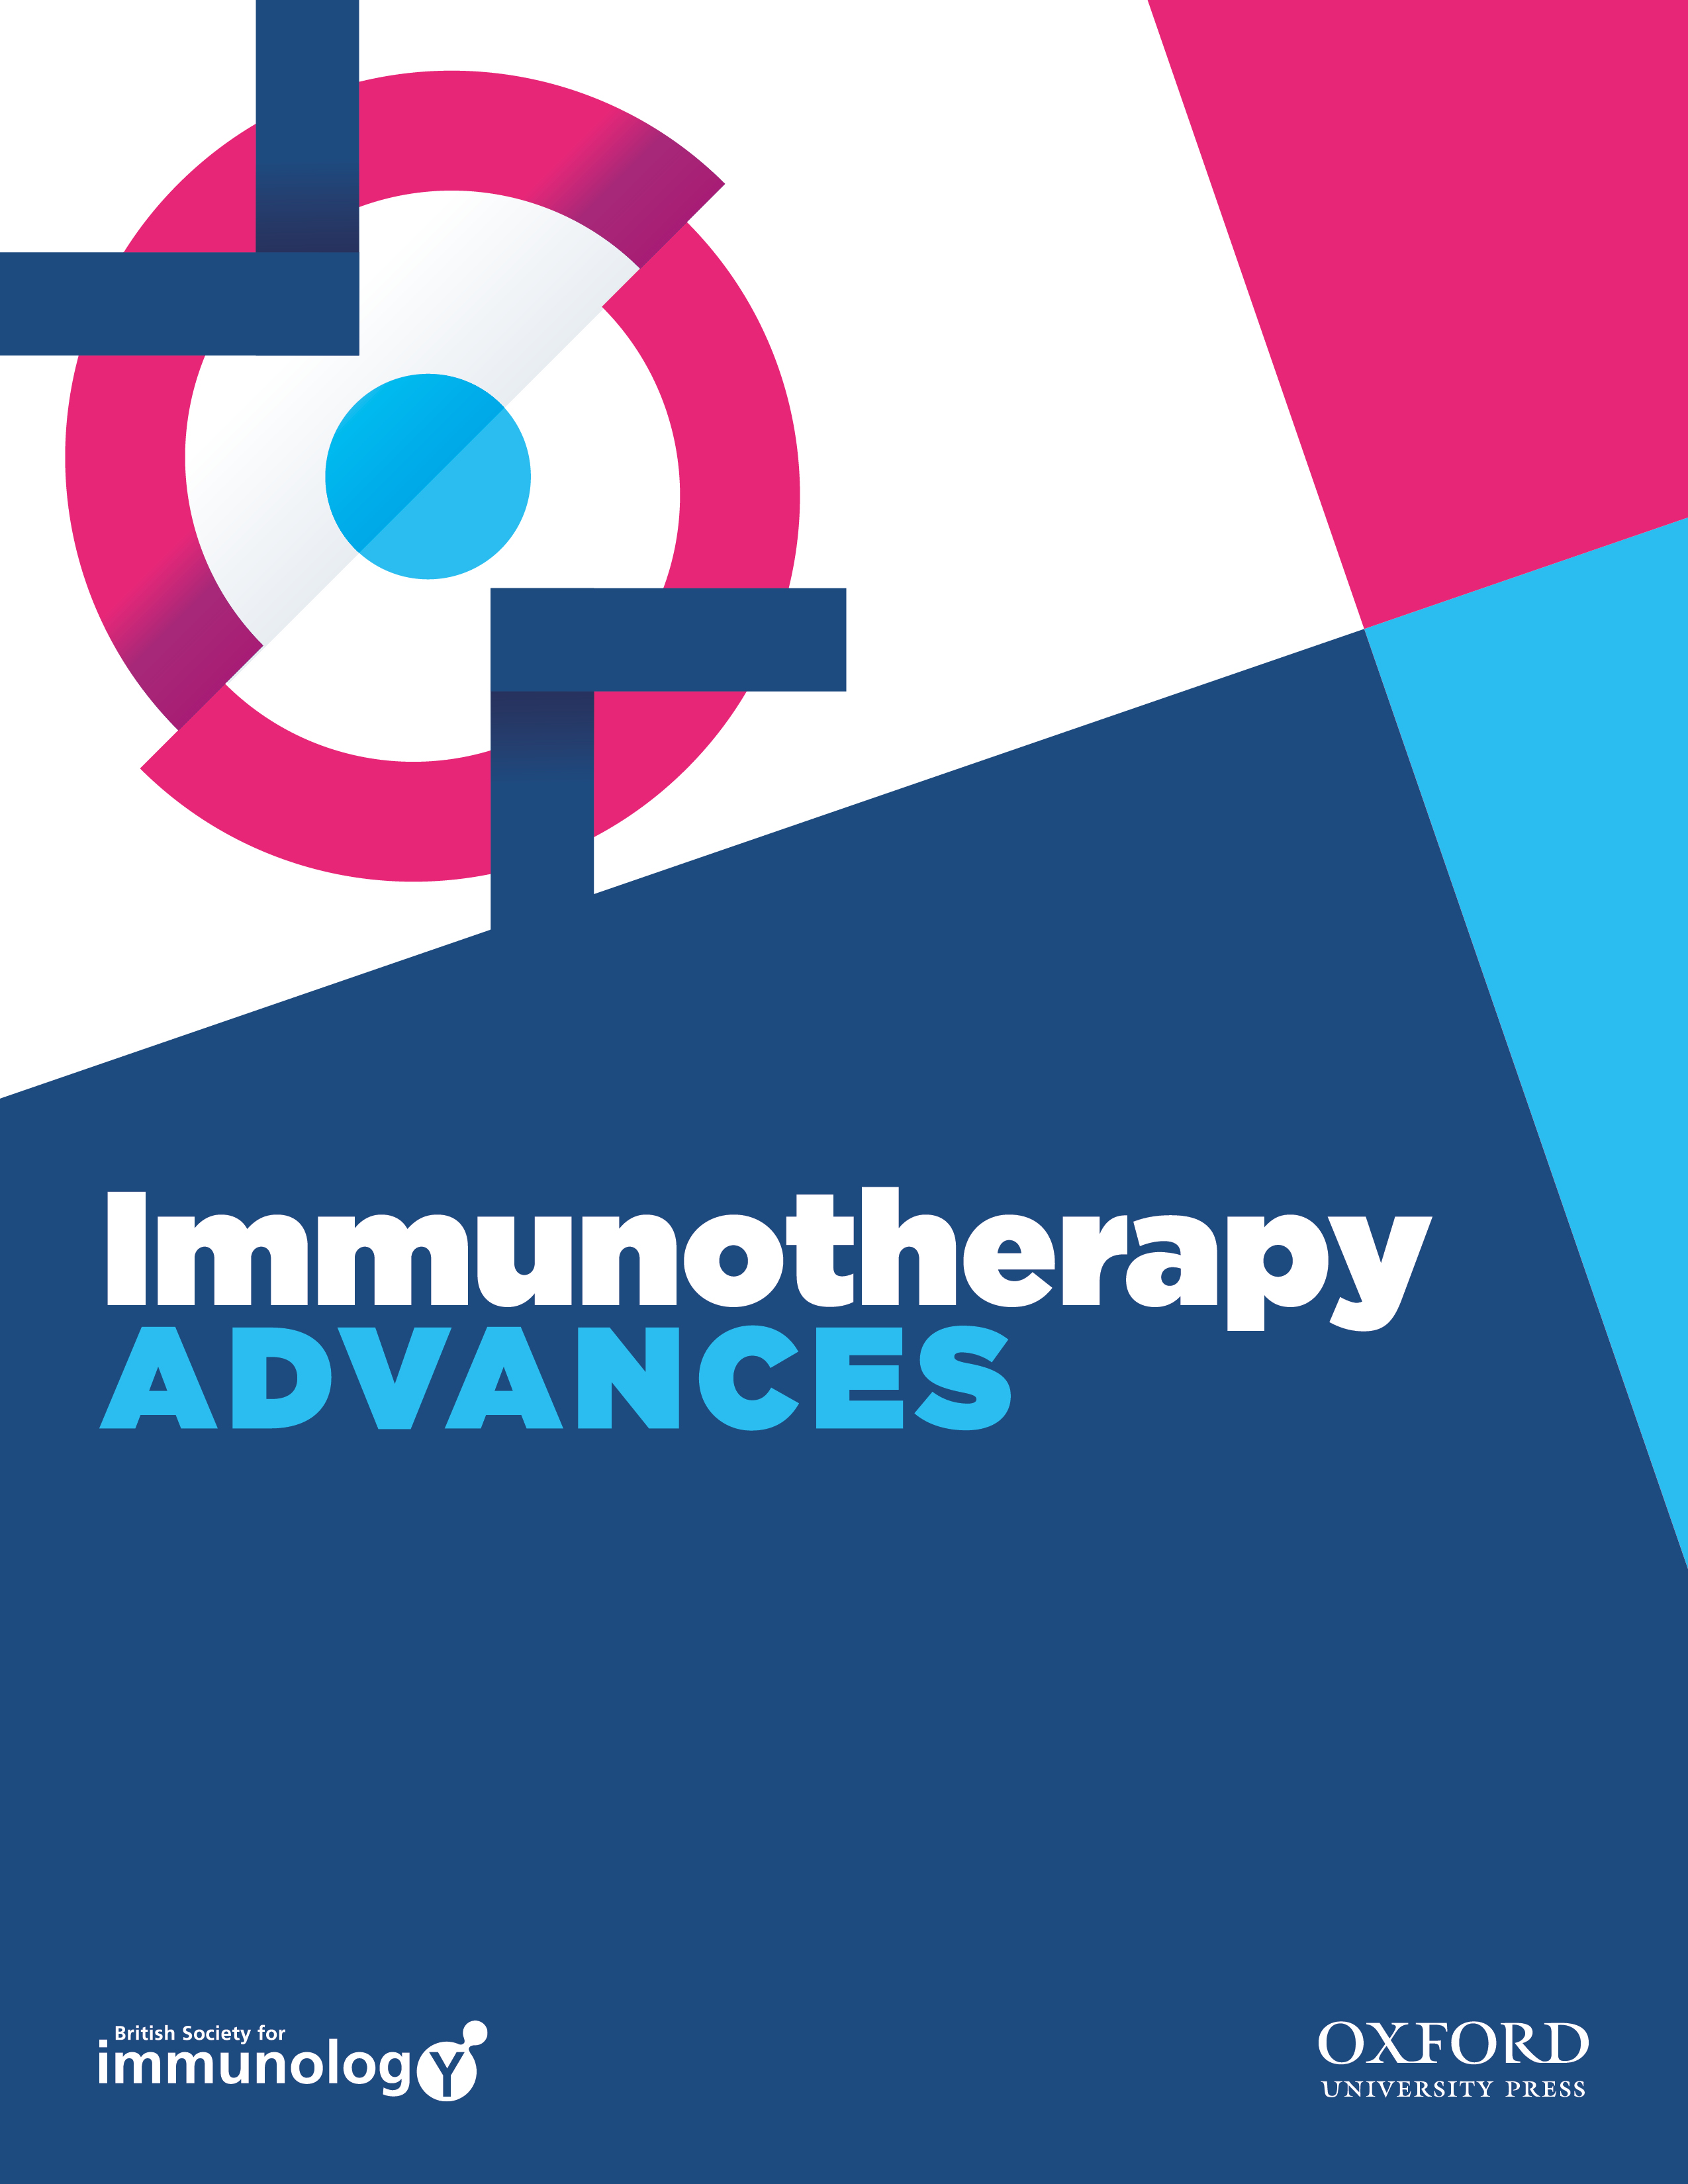 Immunotherapy Advances journal front cover.